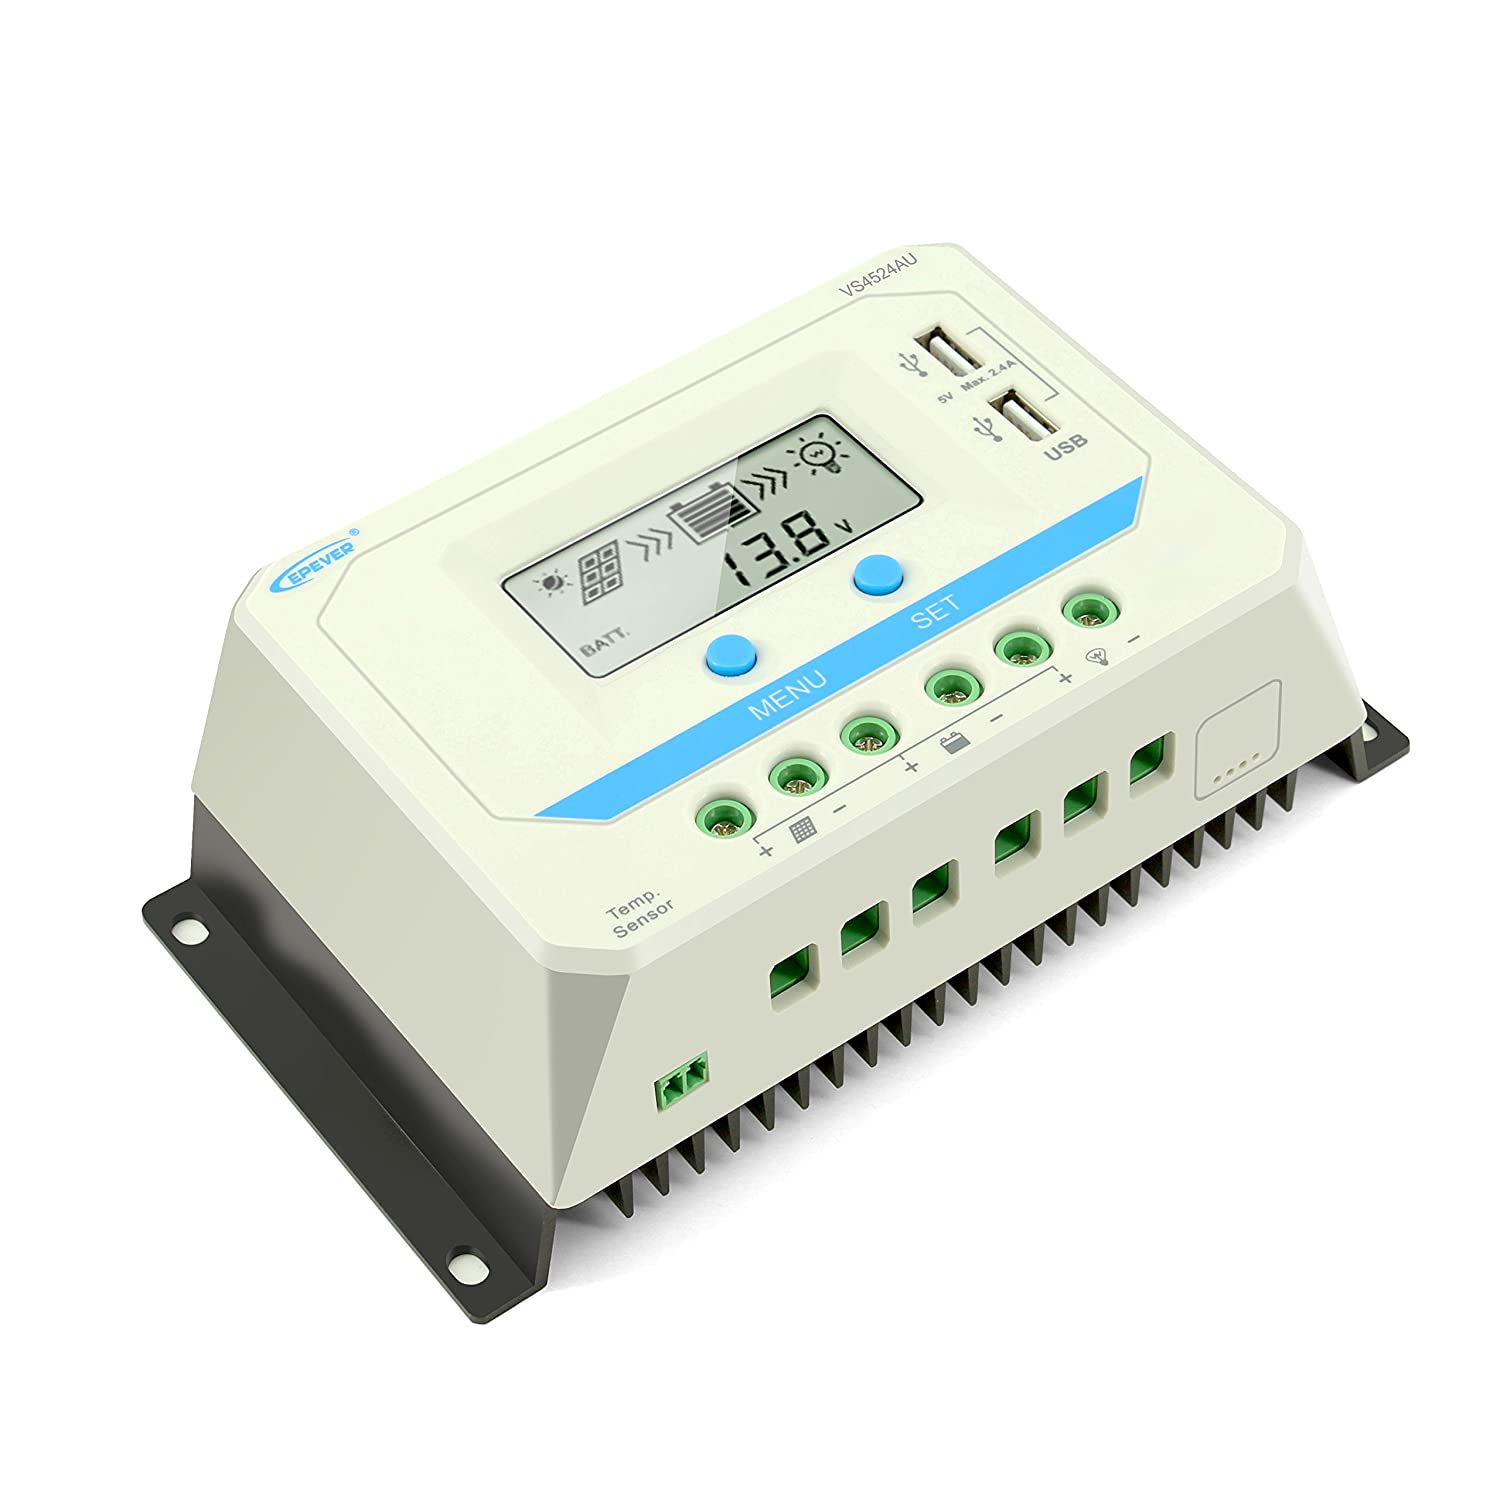 Epever Solar Charge Controller 45a Panel Street Lightsolar Led Light With 12 24v Circuitsolar 12v Battery Regulator Lcd Display Dual Usb Output For